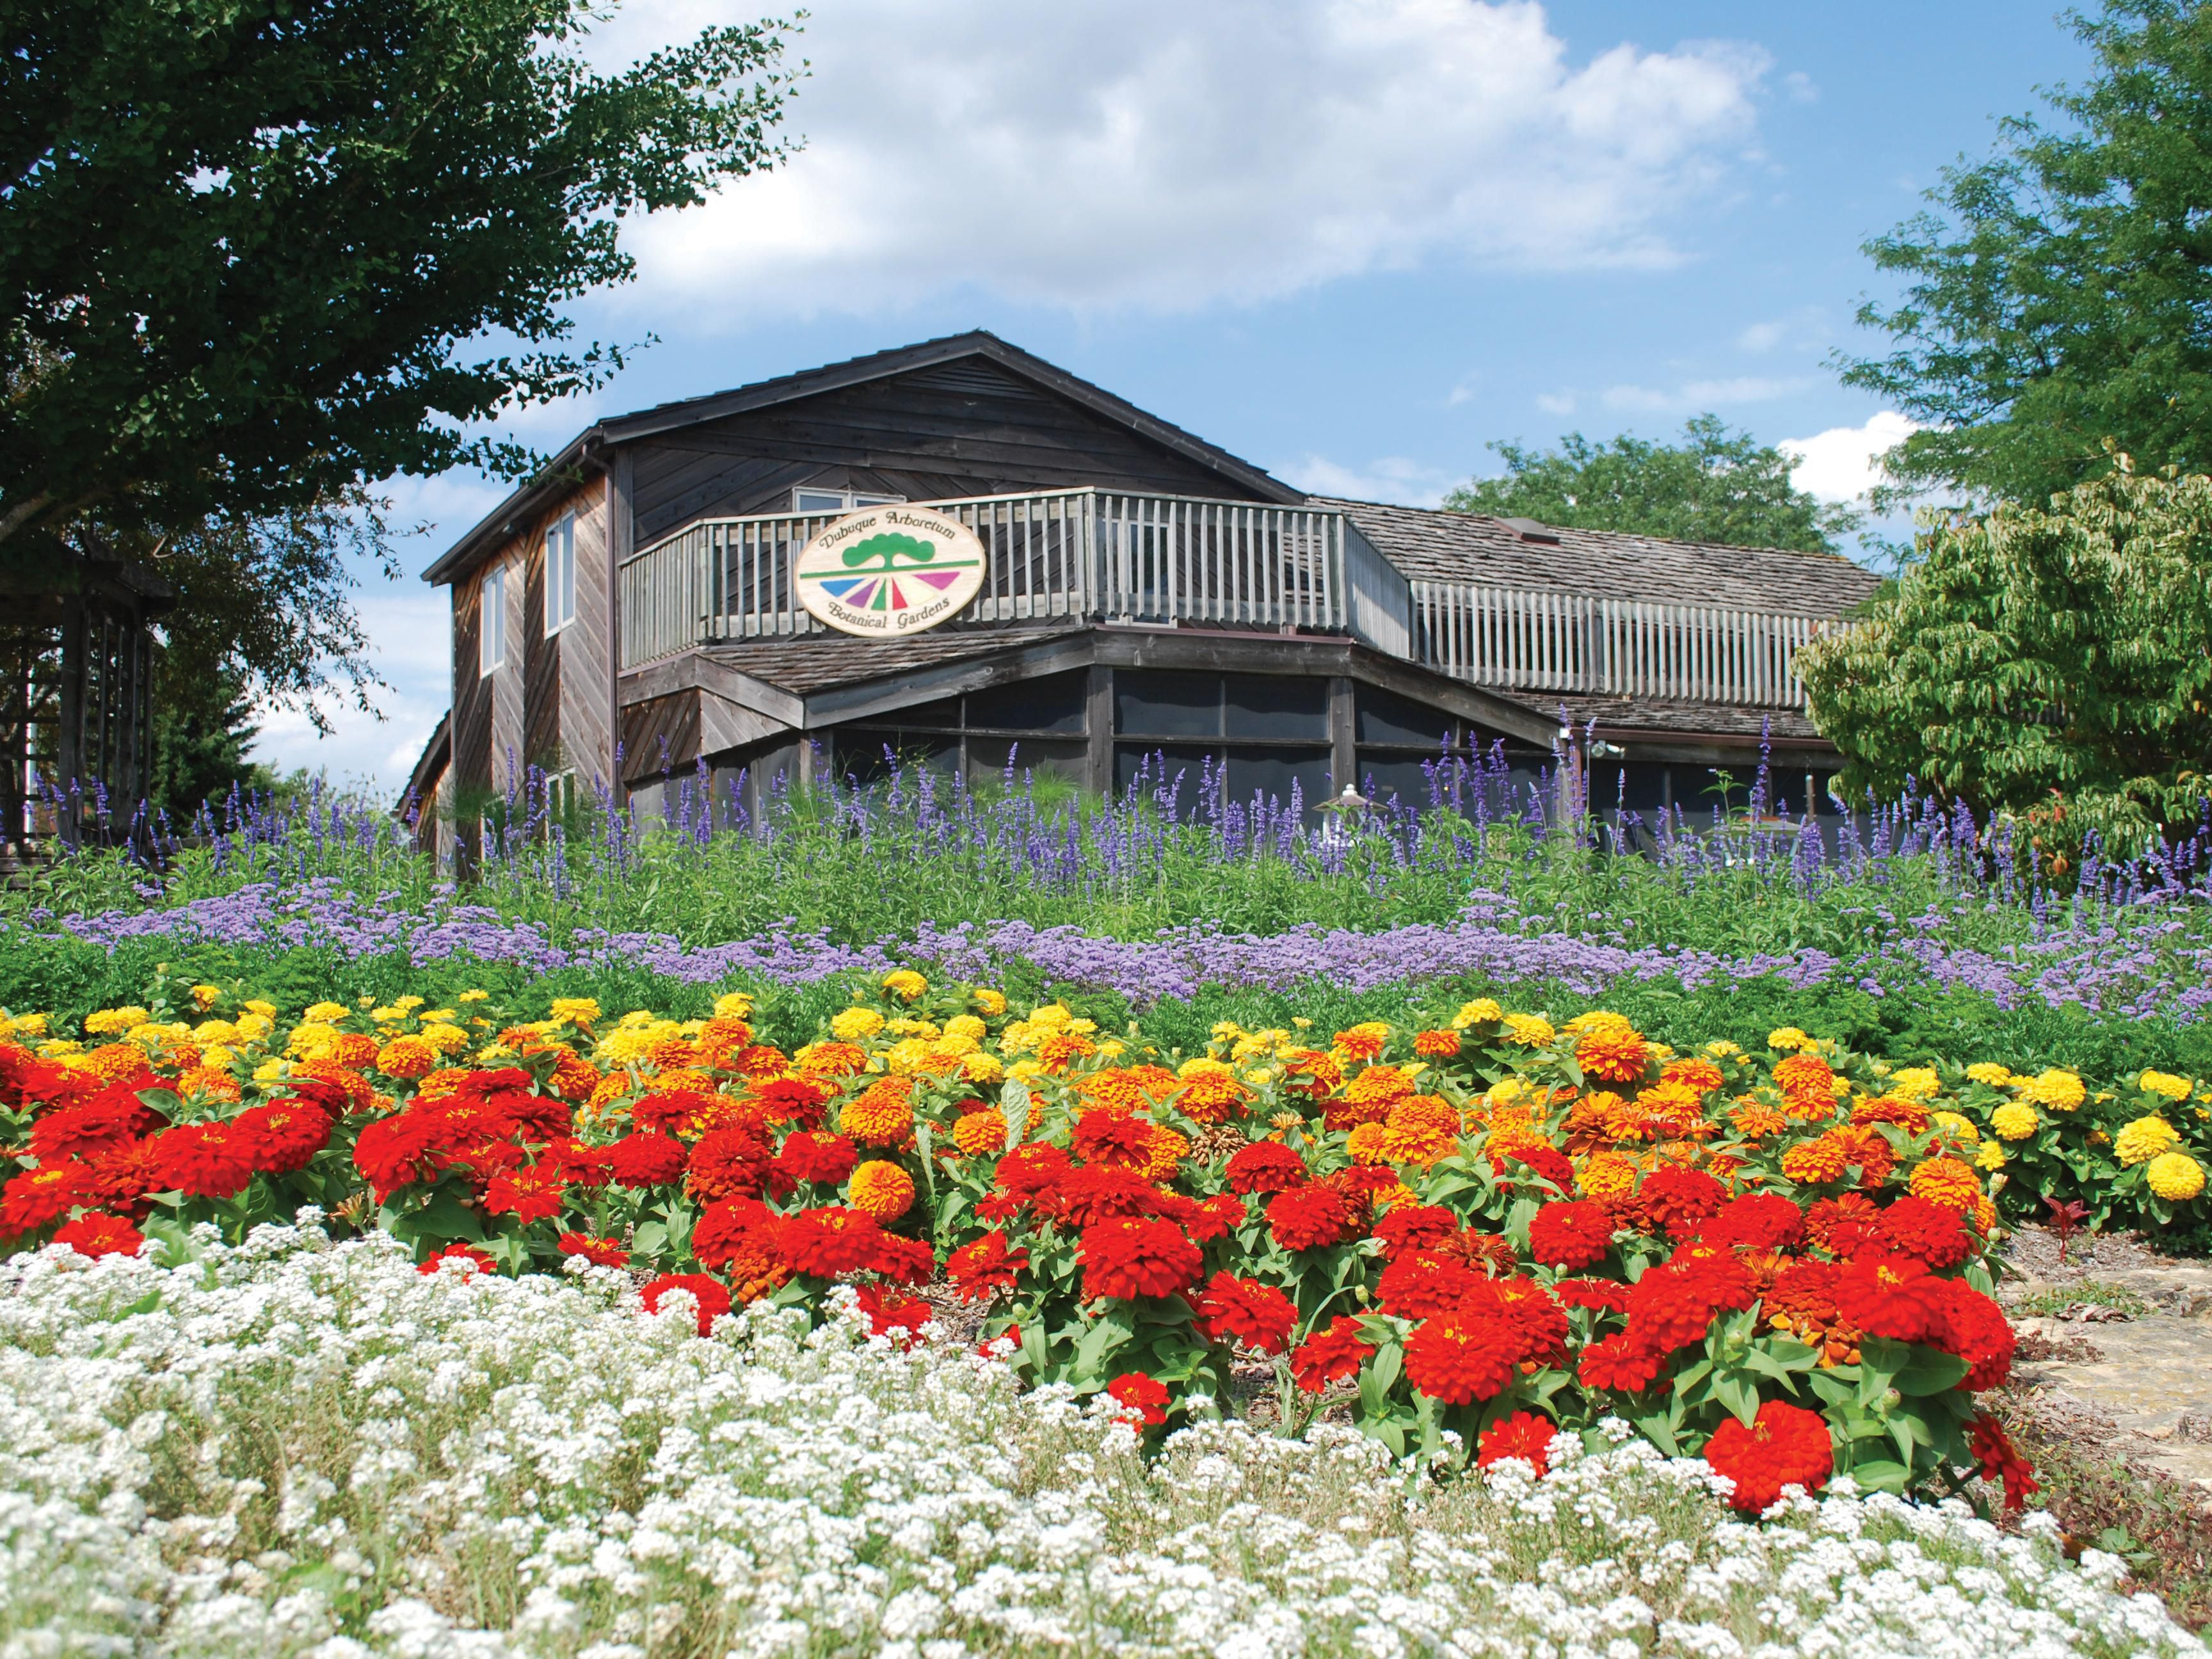 The Dubuque Arboretum is open year-round